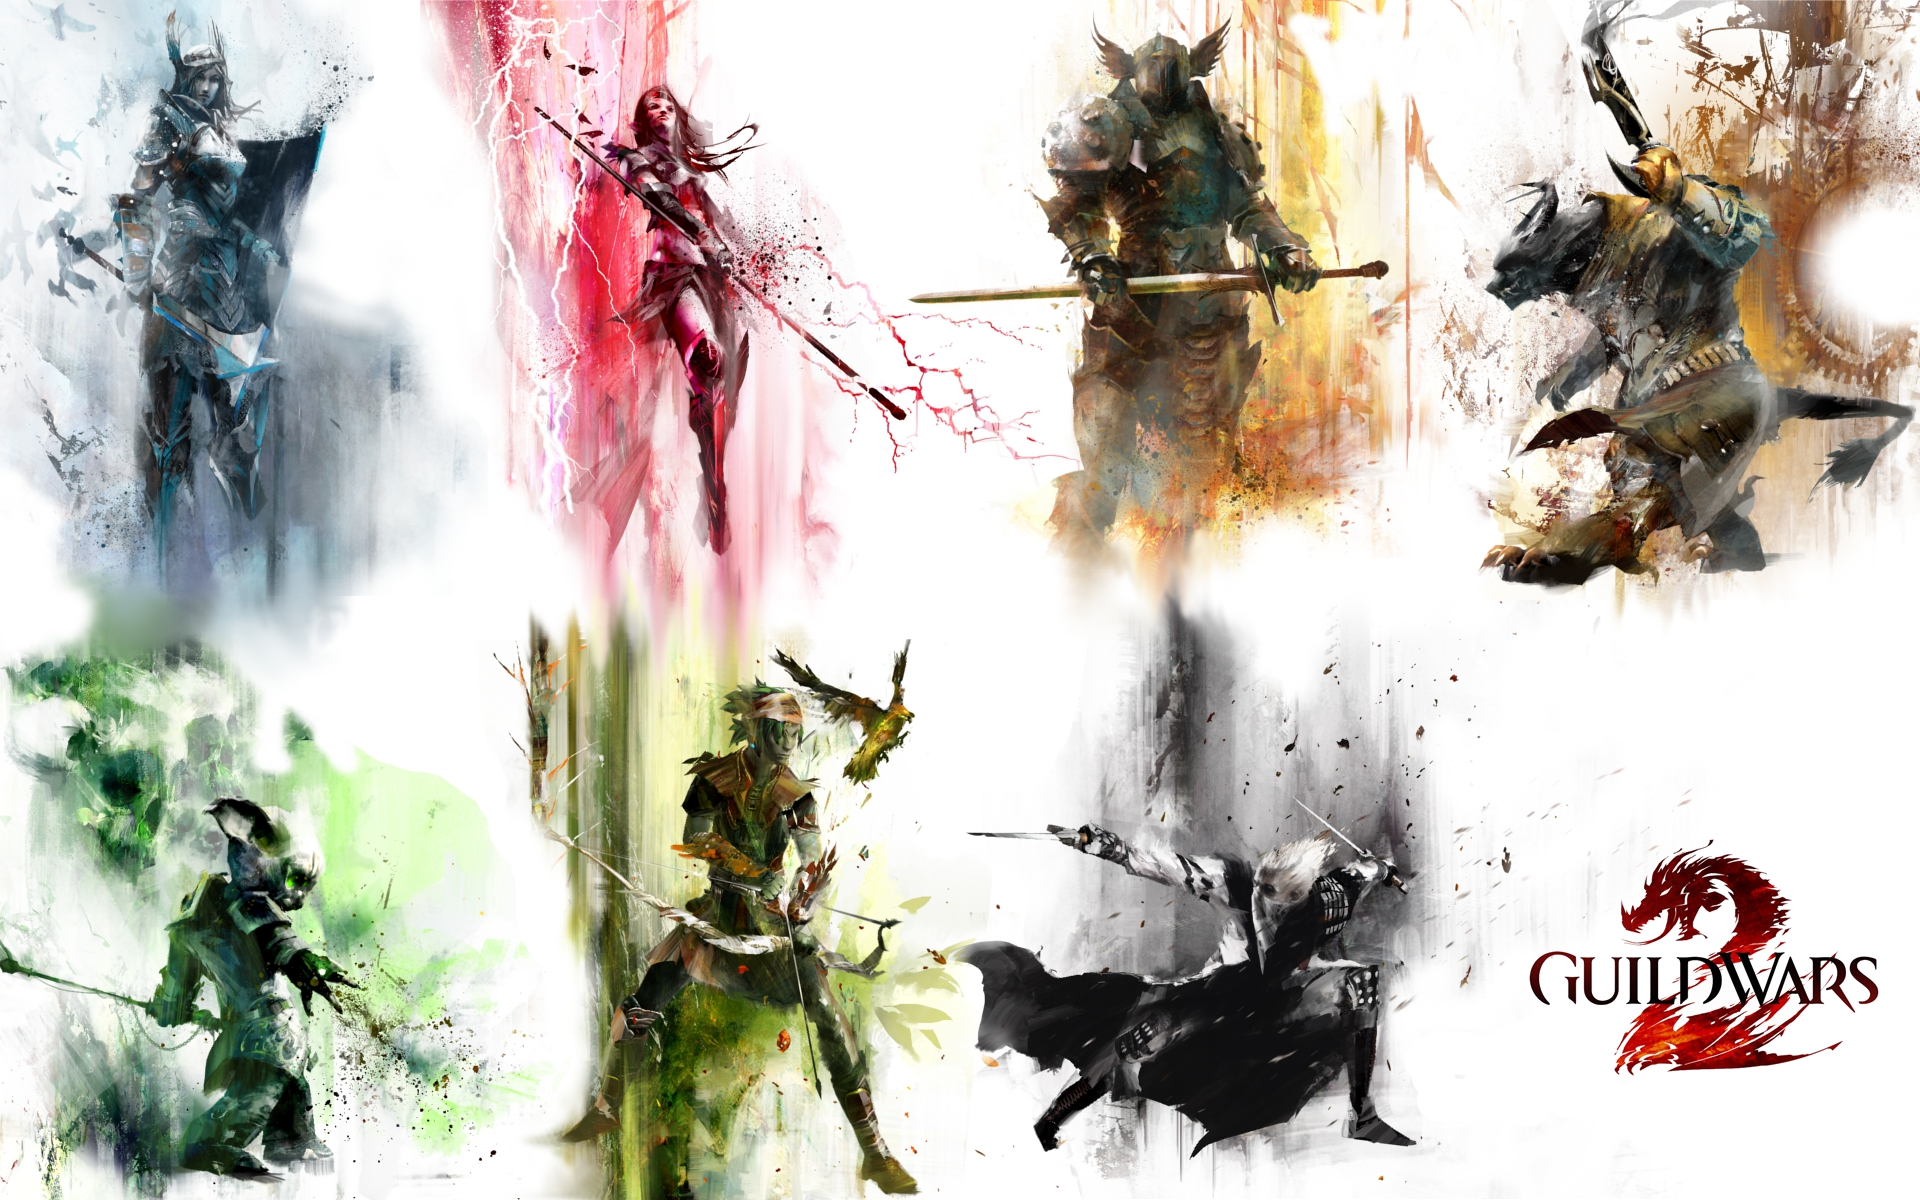 Awesome Guild Wars 2 Game Wallpaper